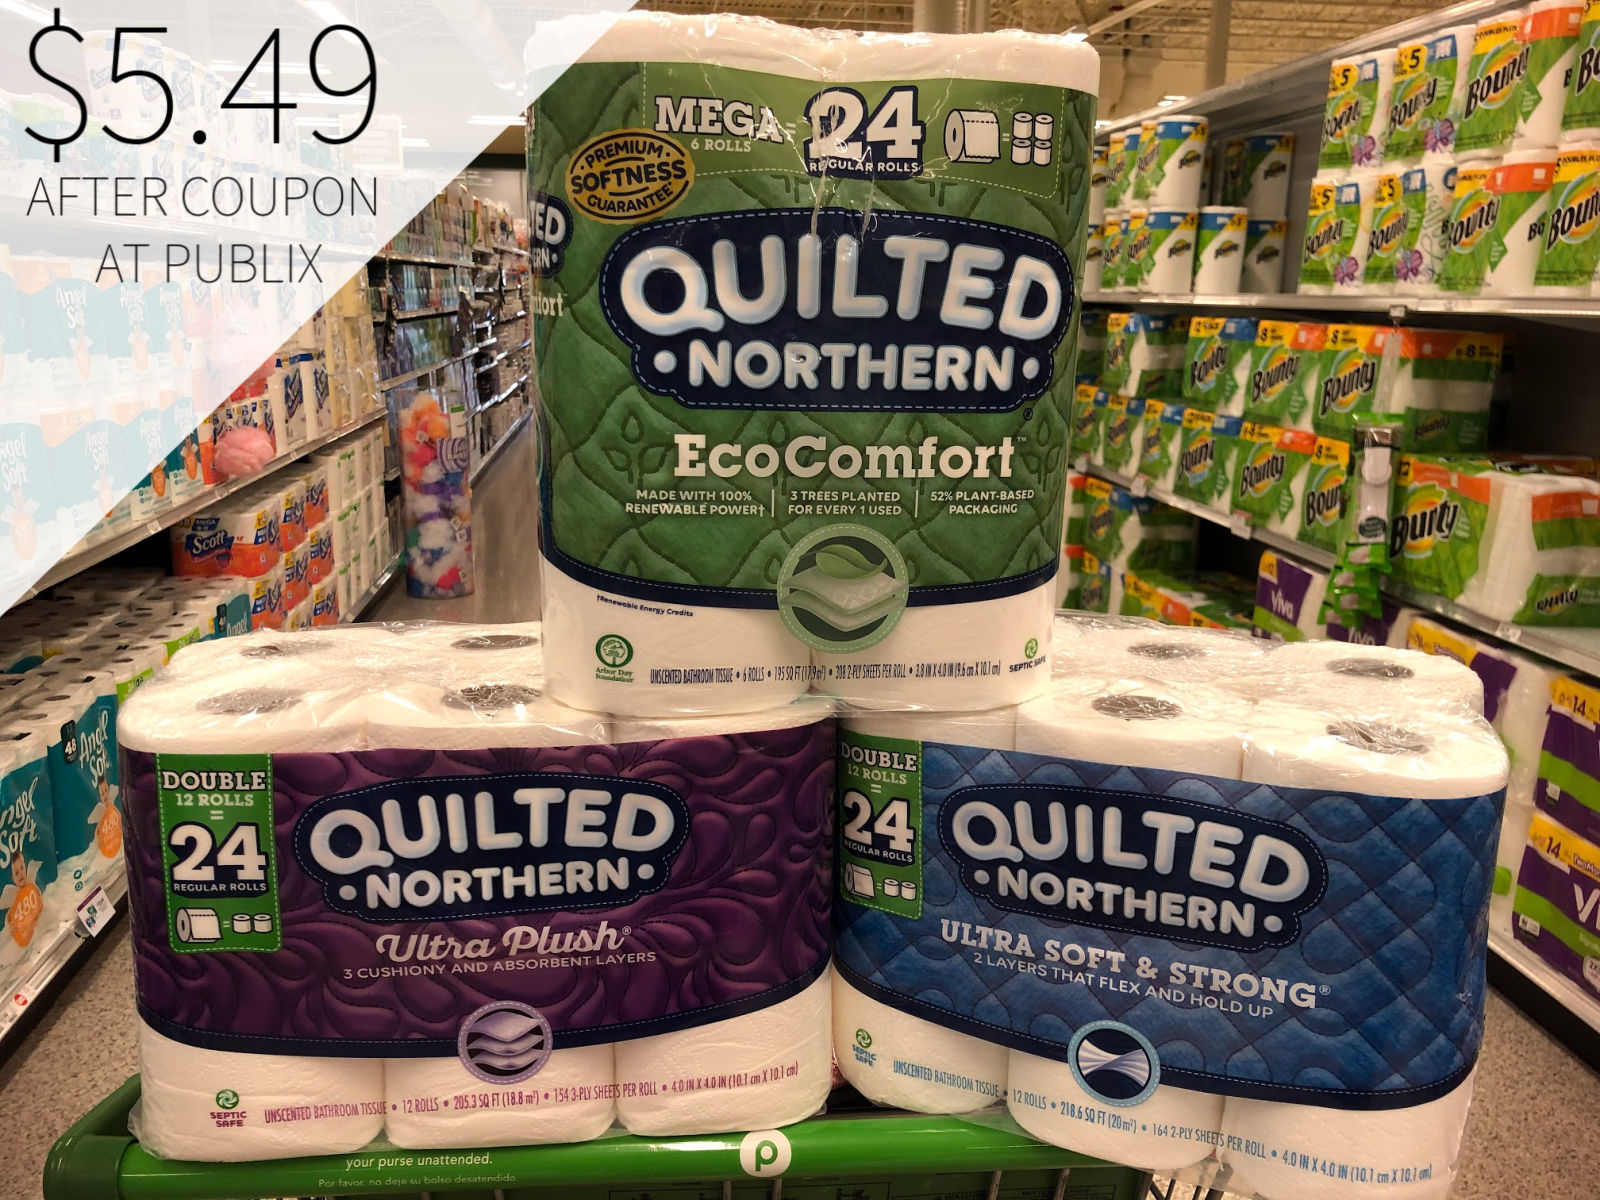 Still Time To Grab A Super Deal On Quilted Northern® Bathroom Tissue Right Now At Publix on I Heart Publix